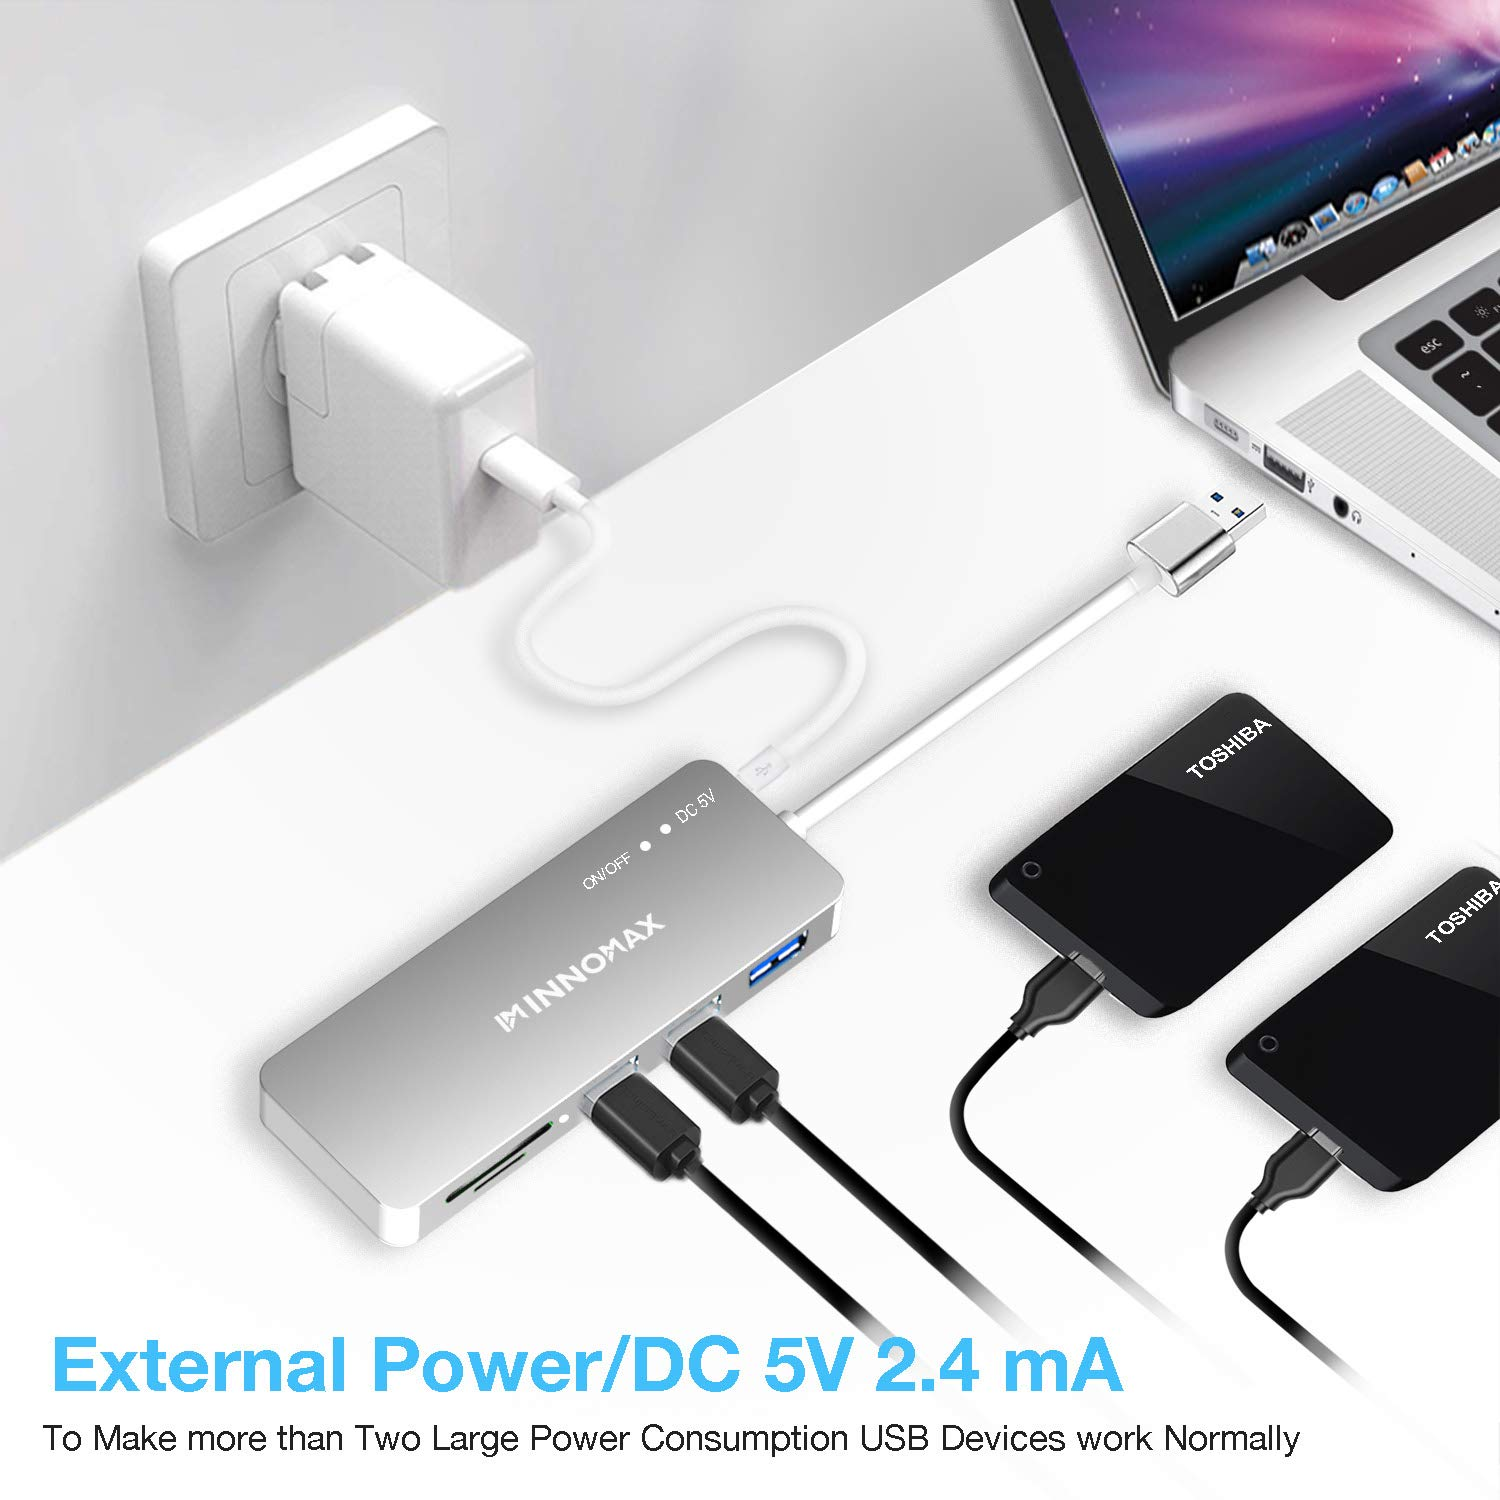 USB 3.0 Powered Hub, INNOMAX Aluminum USB 3.0 Hub with 3 USB 3.0 Ports and Smart Fast Charging Port, External Power Port, SD/ Micro SD Card Reader for MacBook / Air, Mac Pro / Mini, iMac, PC, Silver